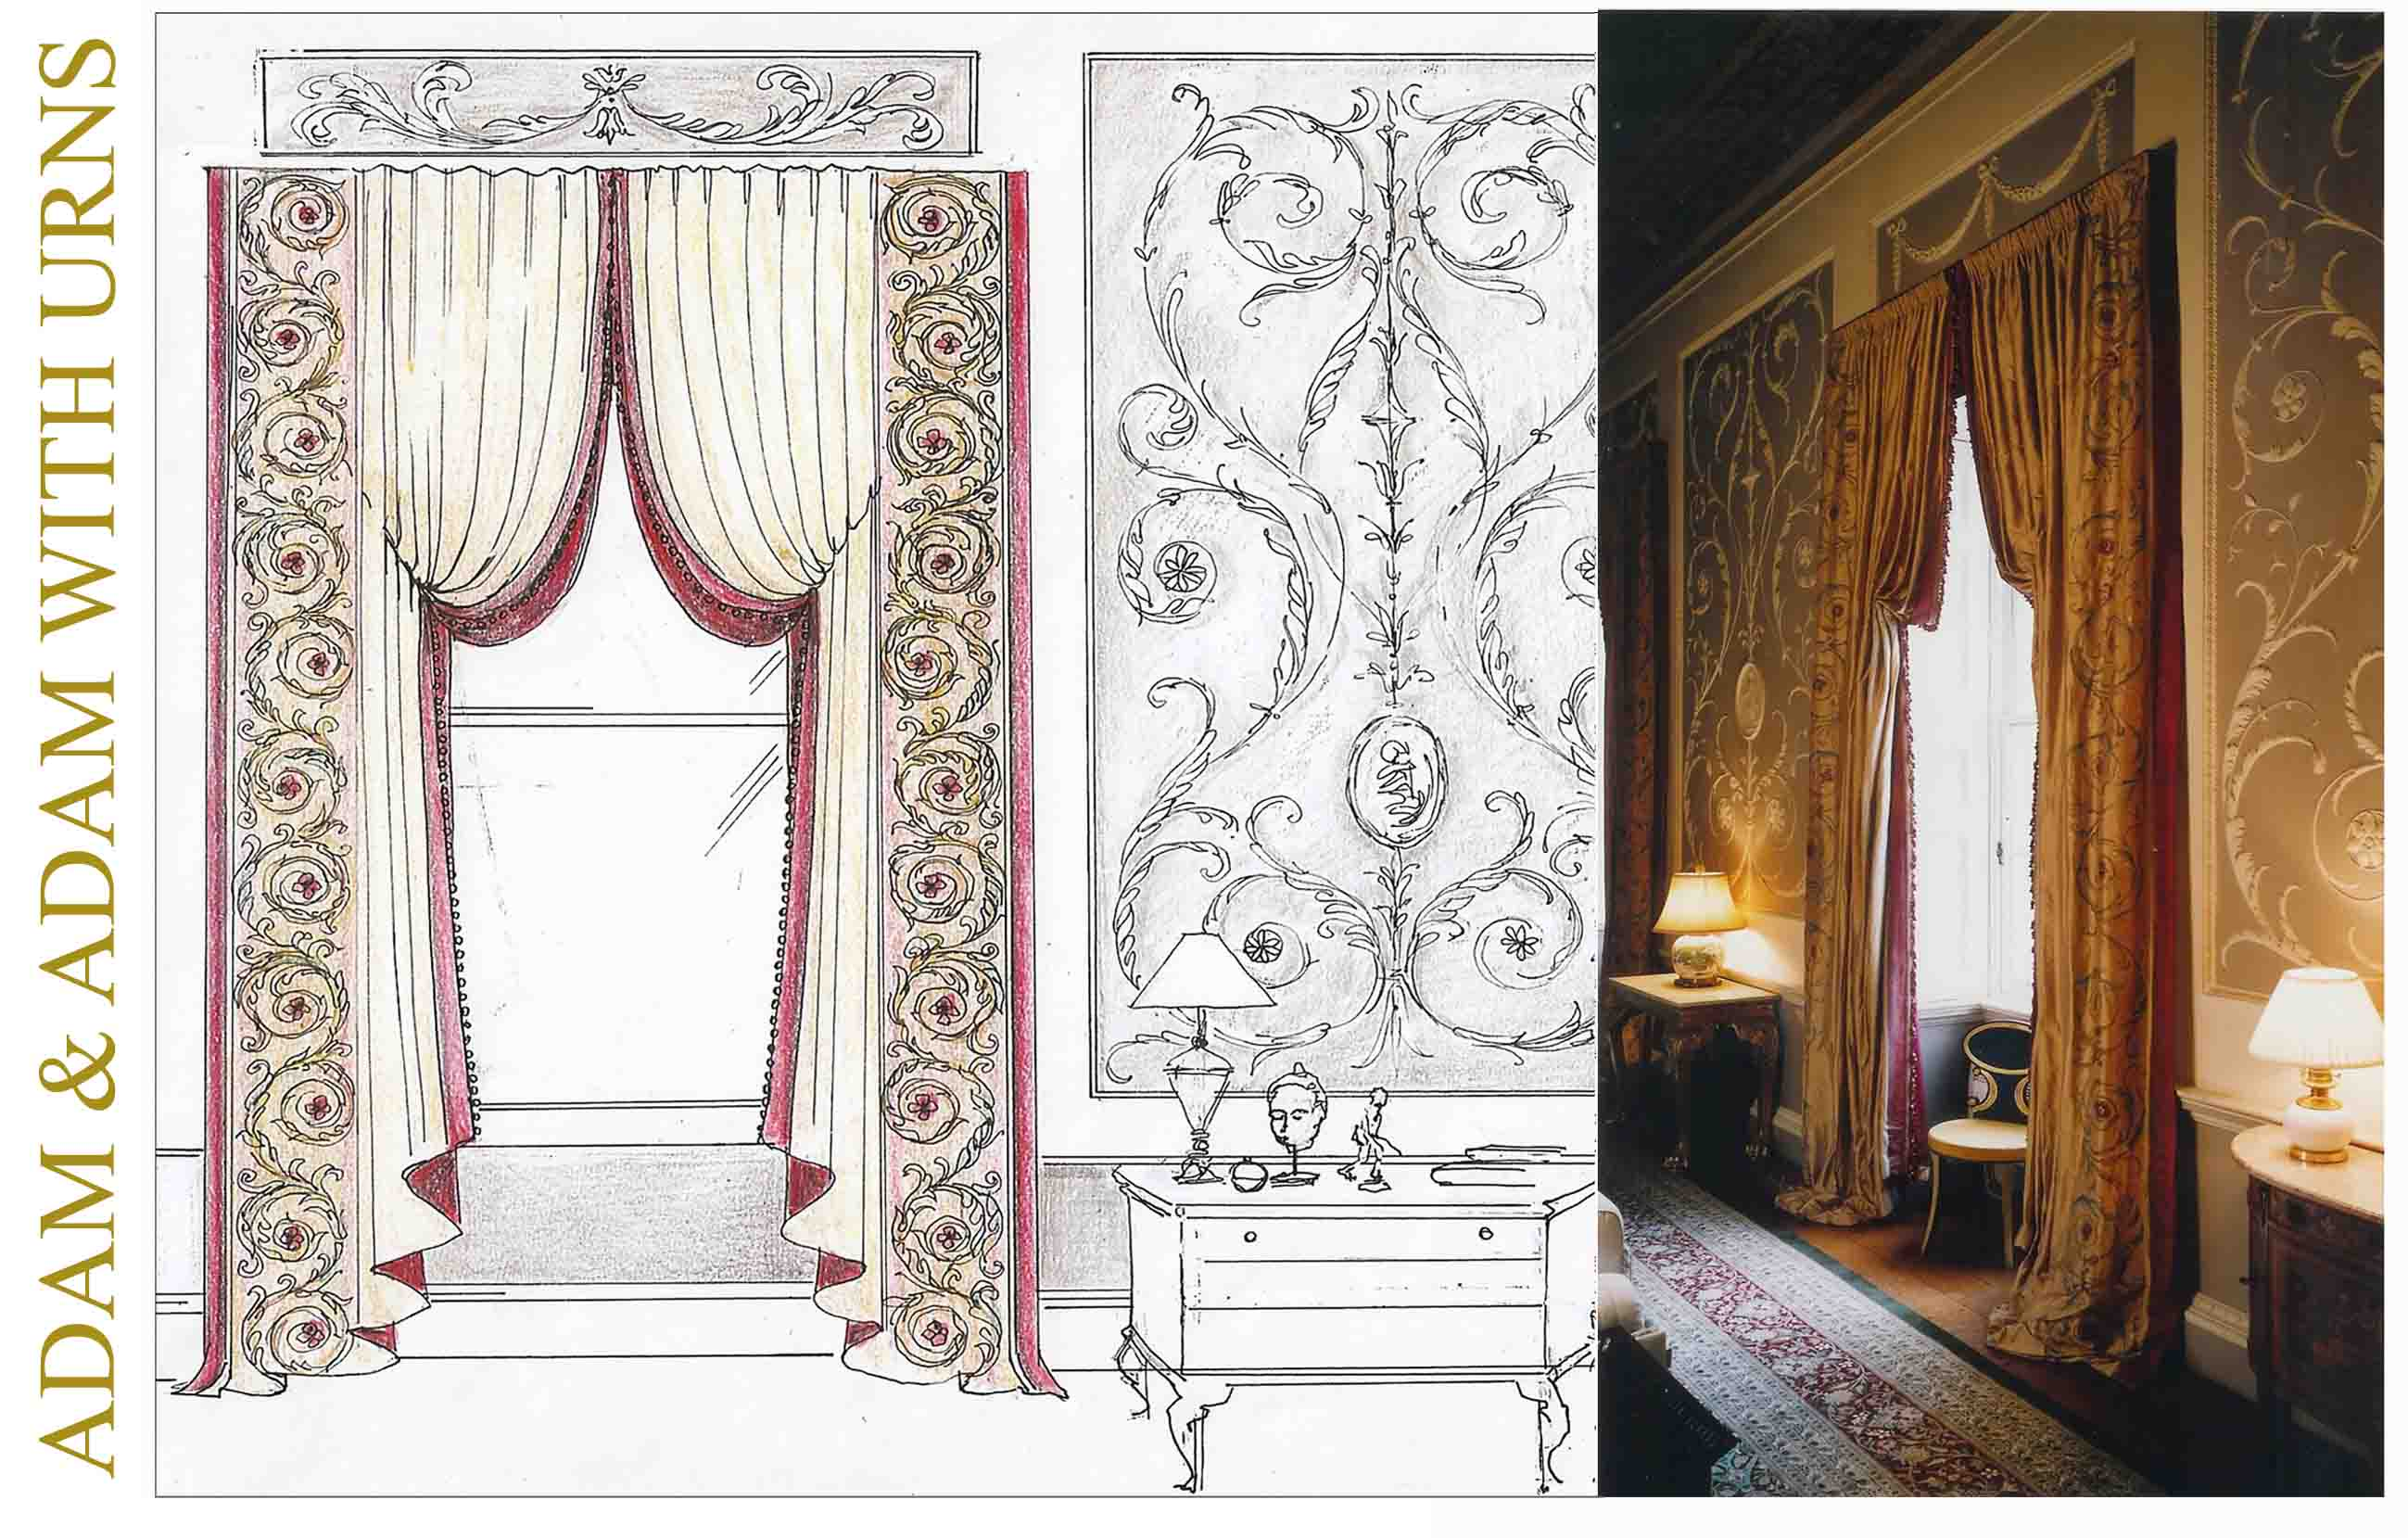 ... curtains with ADAM borders hand painted onto outside edges (right